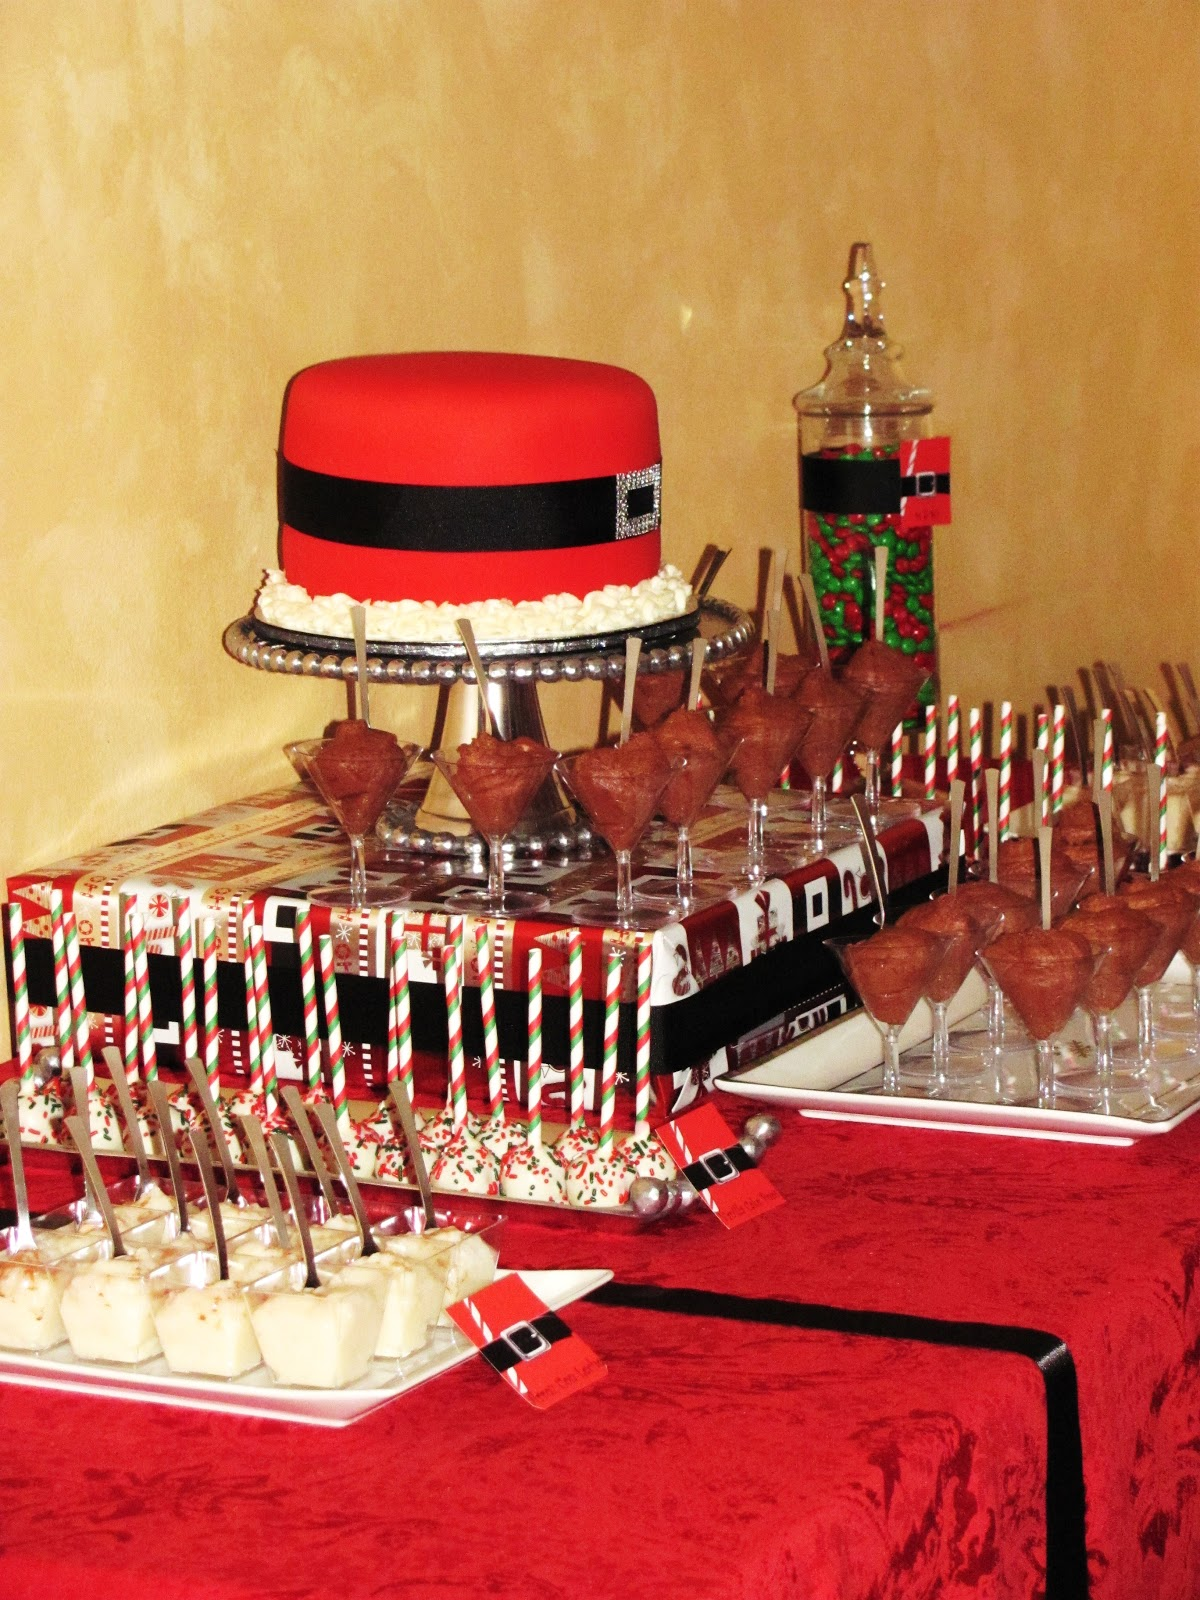 Sweet Treats Carousel Christmas Dessert Table